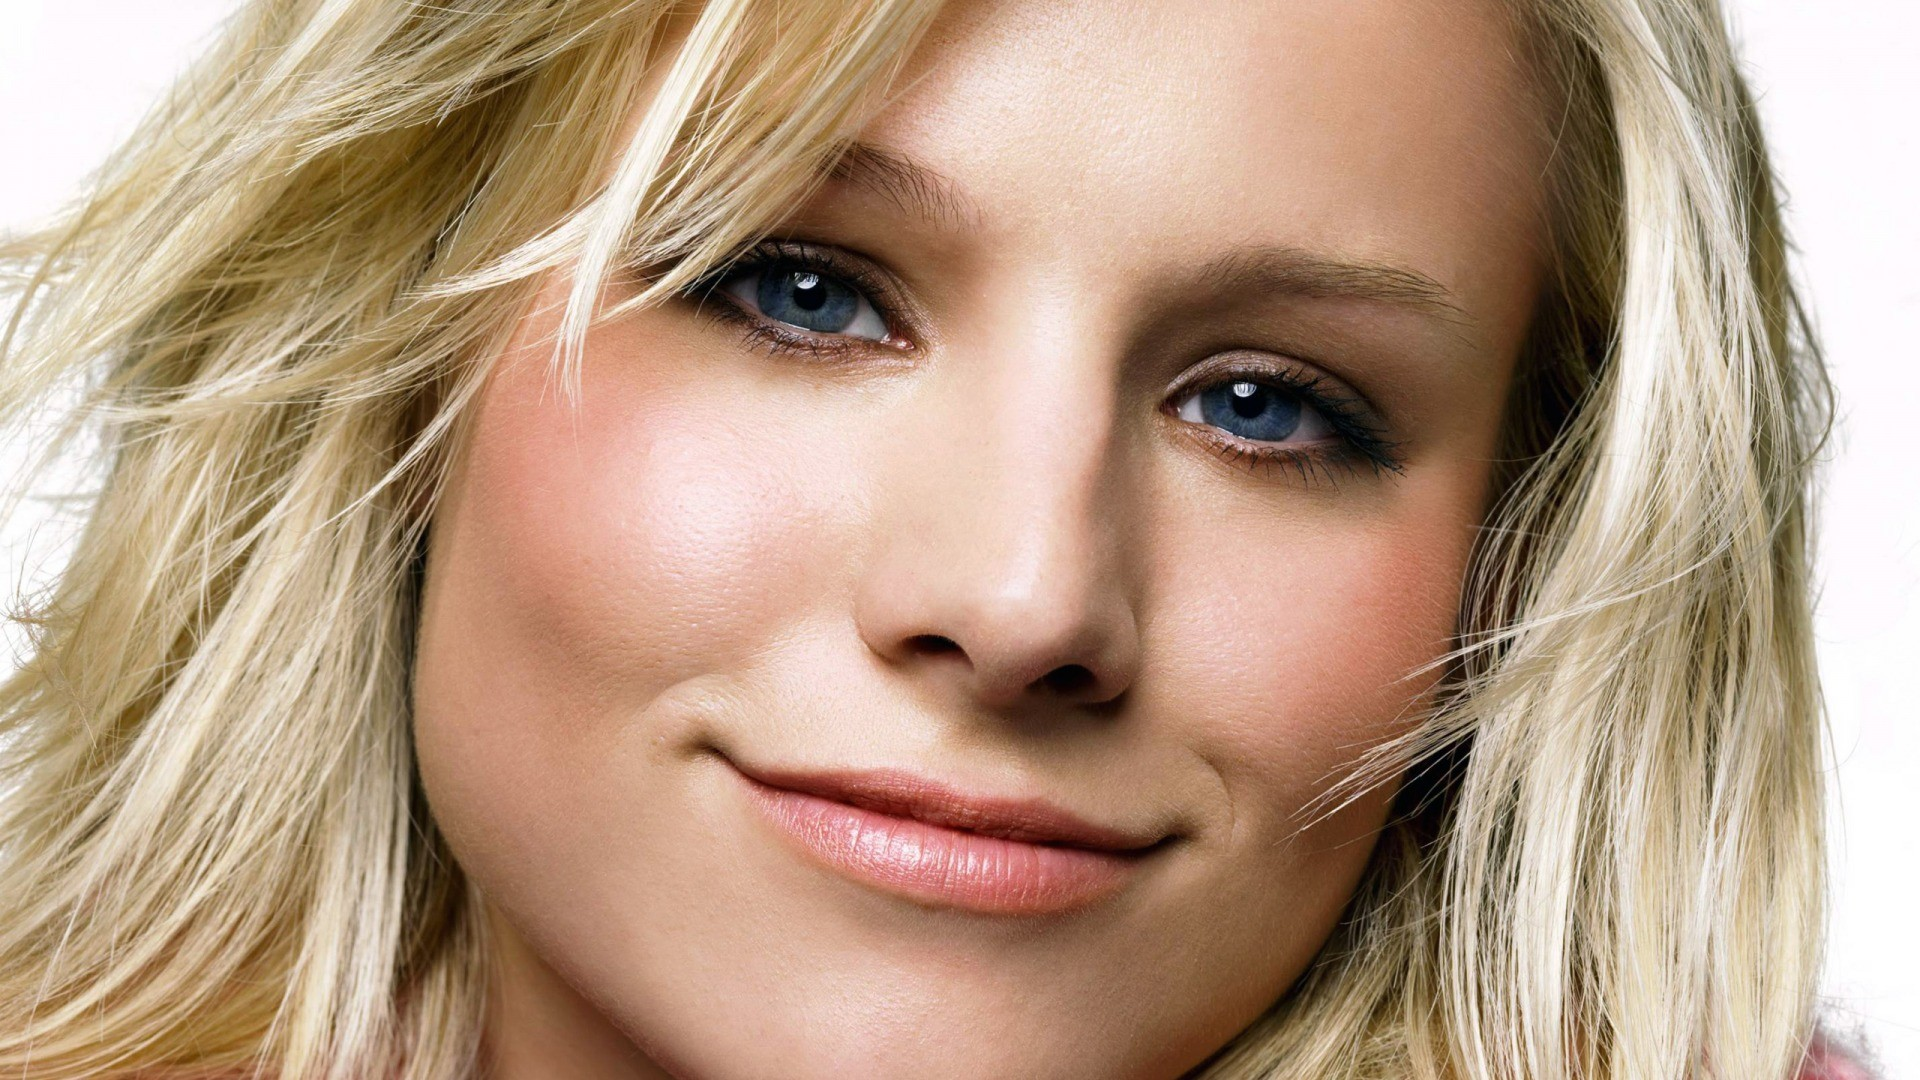 Funny Blonde Celebrities 21 High Resolution Wallpaper